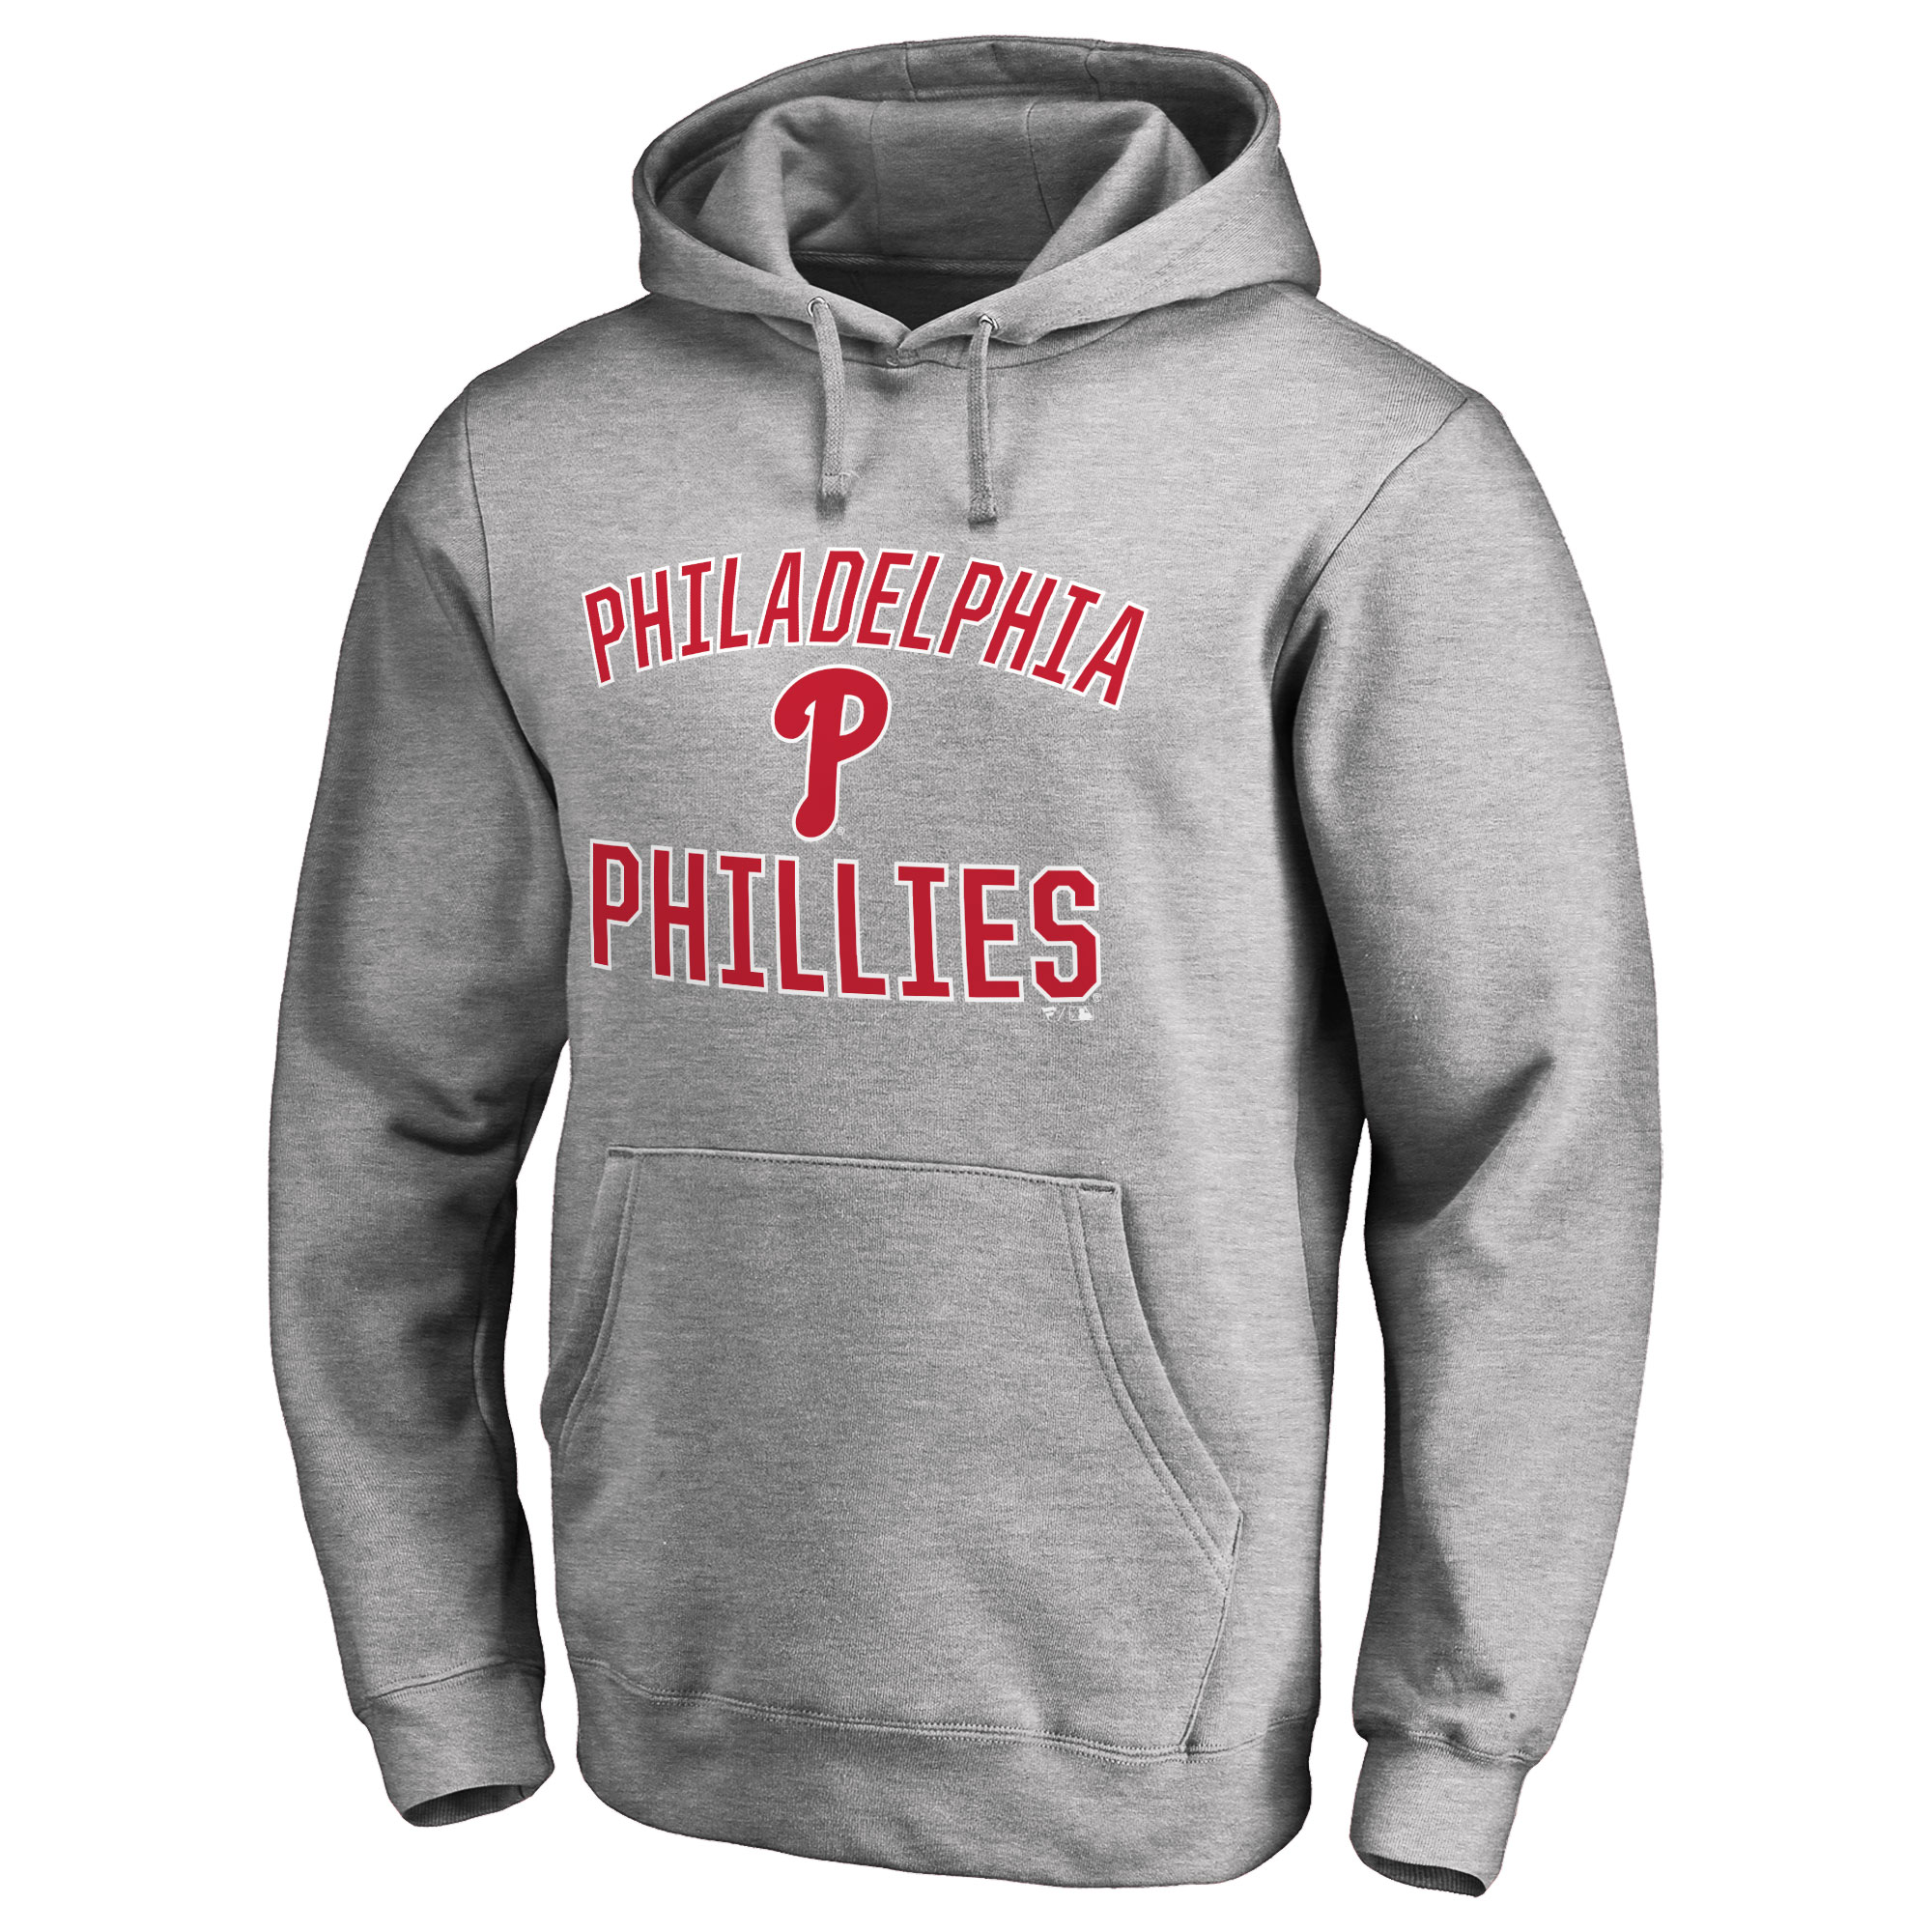 Philadelphia Phillies Victory Arch Pullover Hoodie - Ash